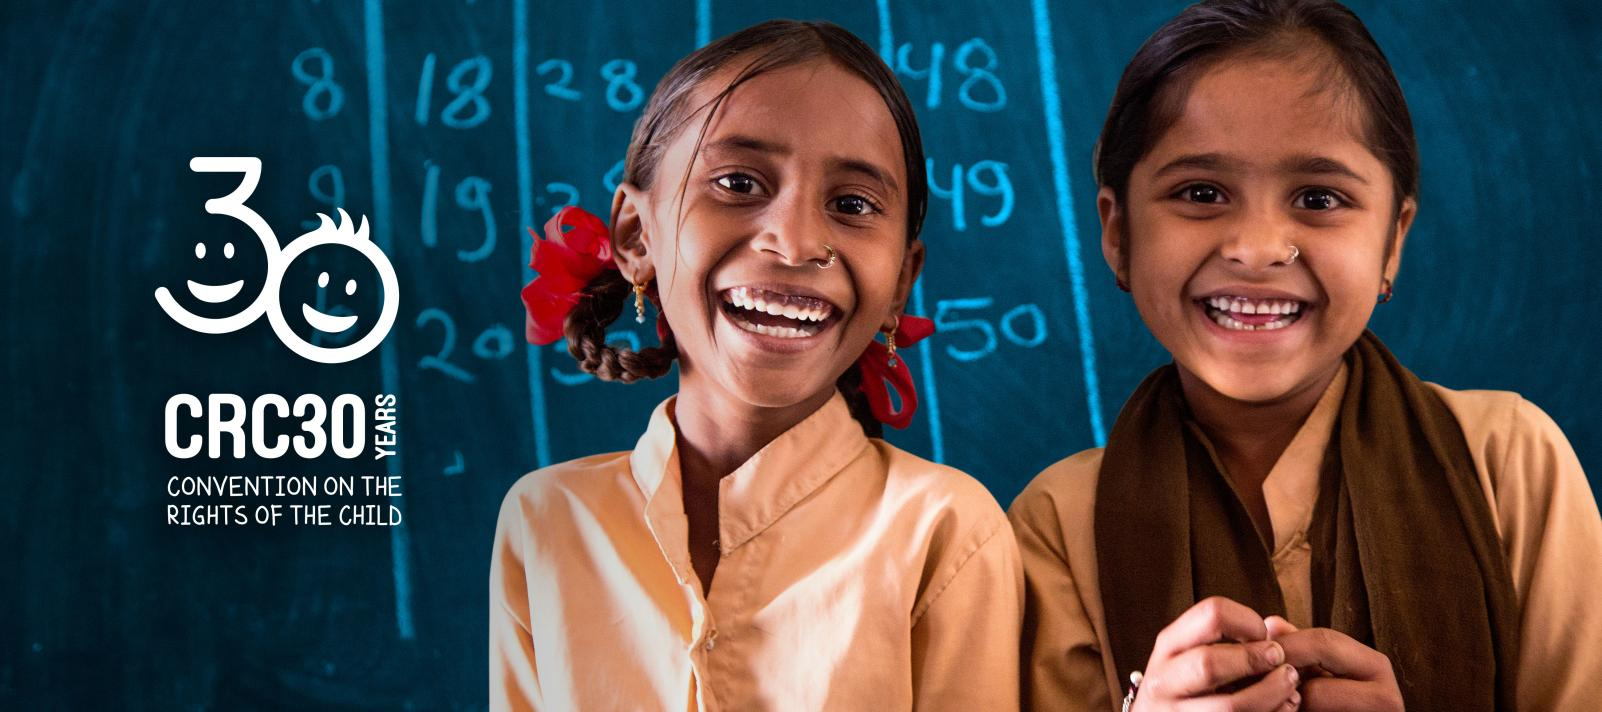 Convention on the Rights of the Child: A 7-year-old student and her best friend stand together in a school classroom in India.